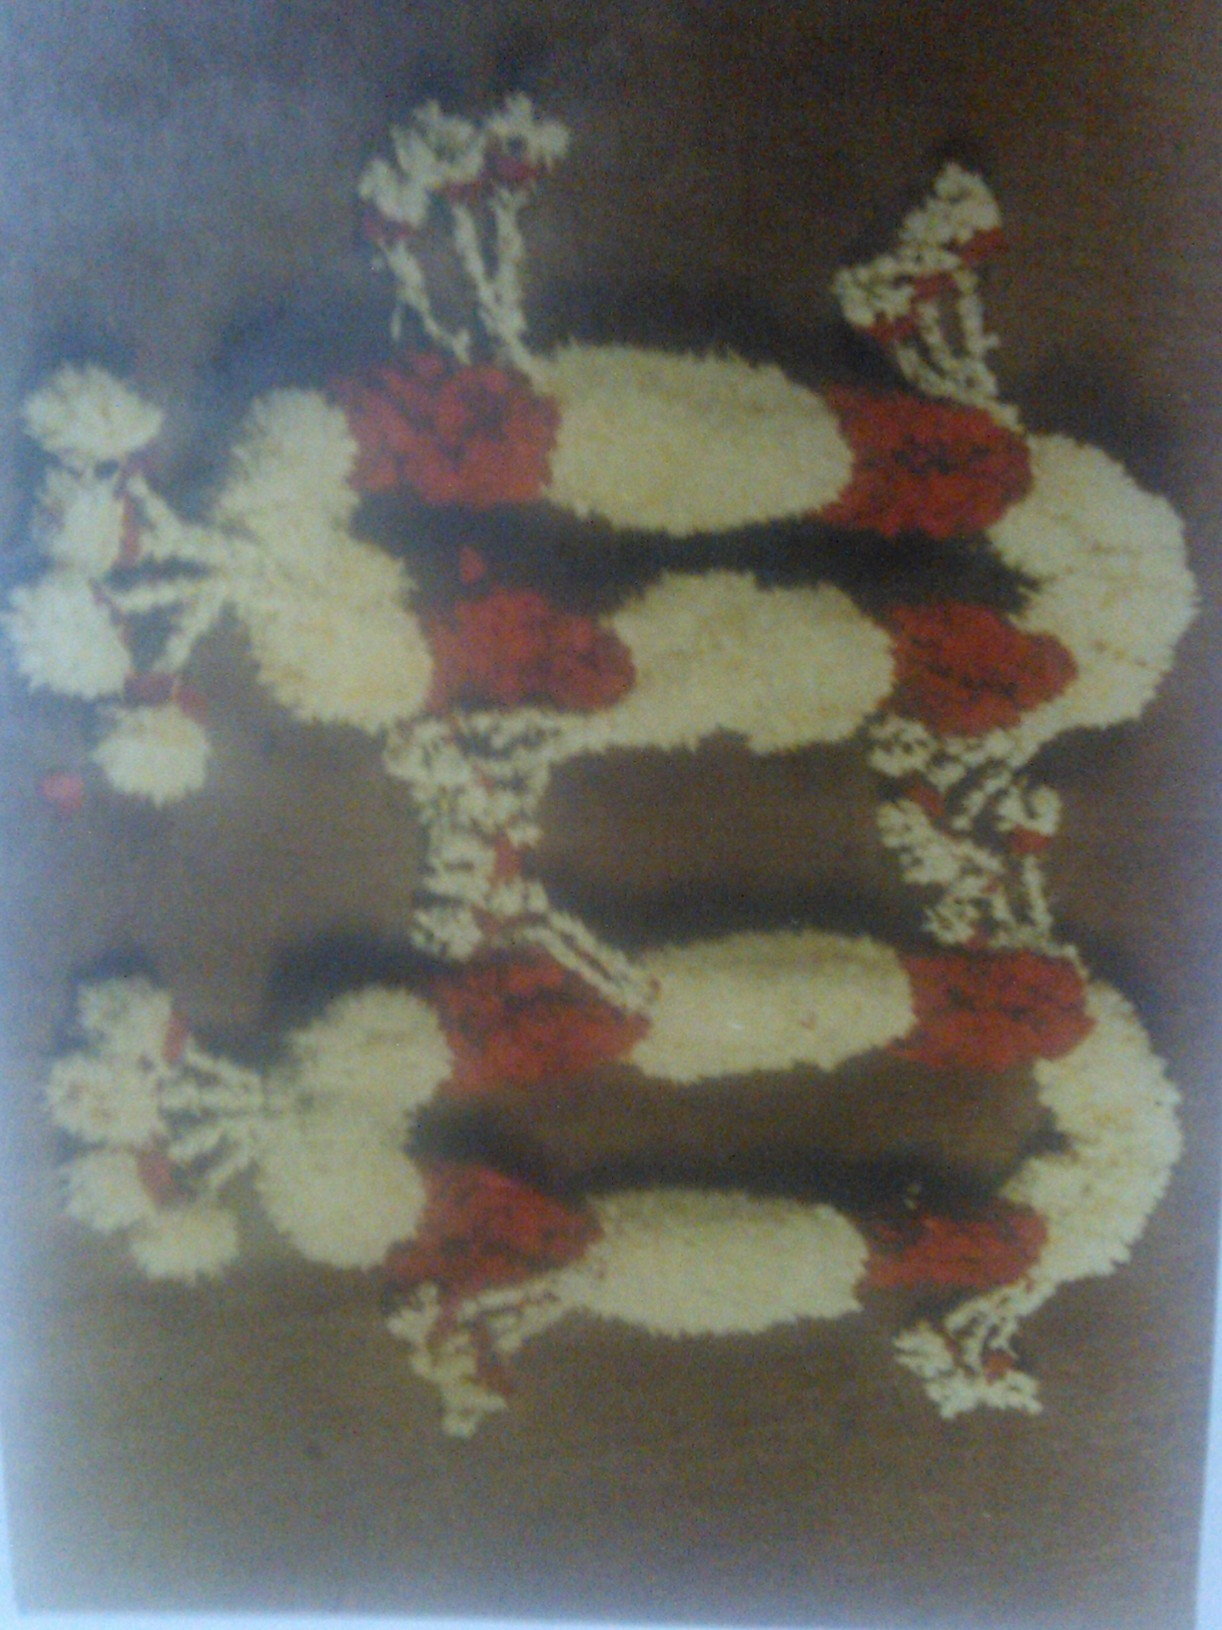 Rose and Godawari Garland